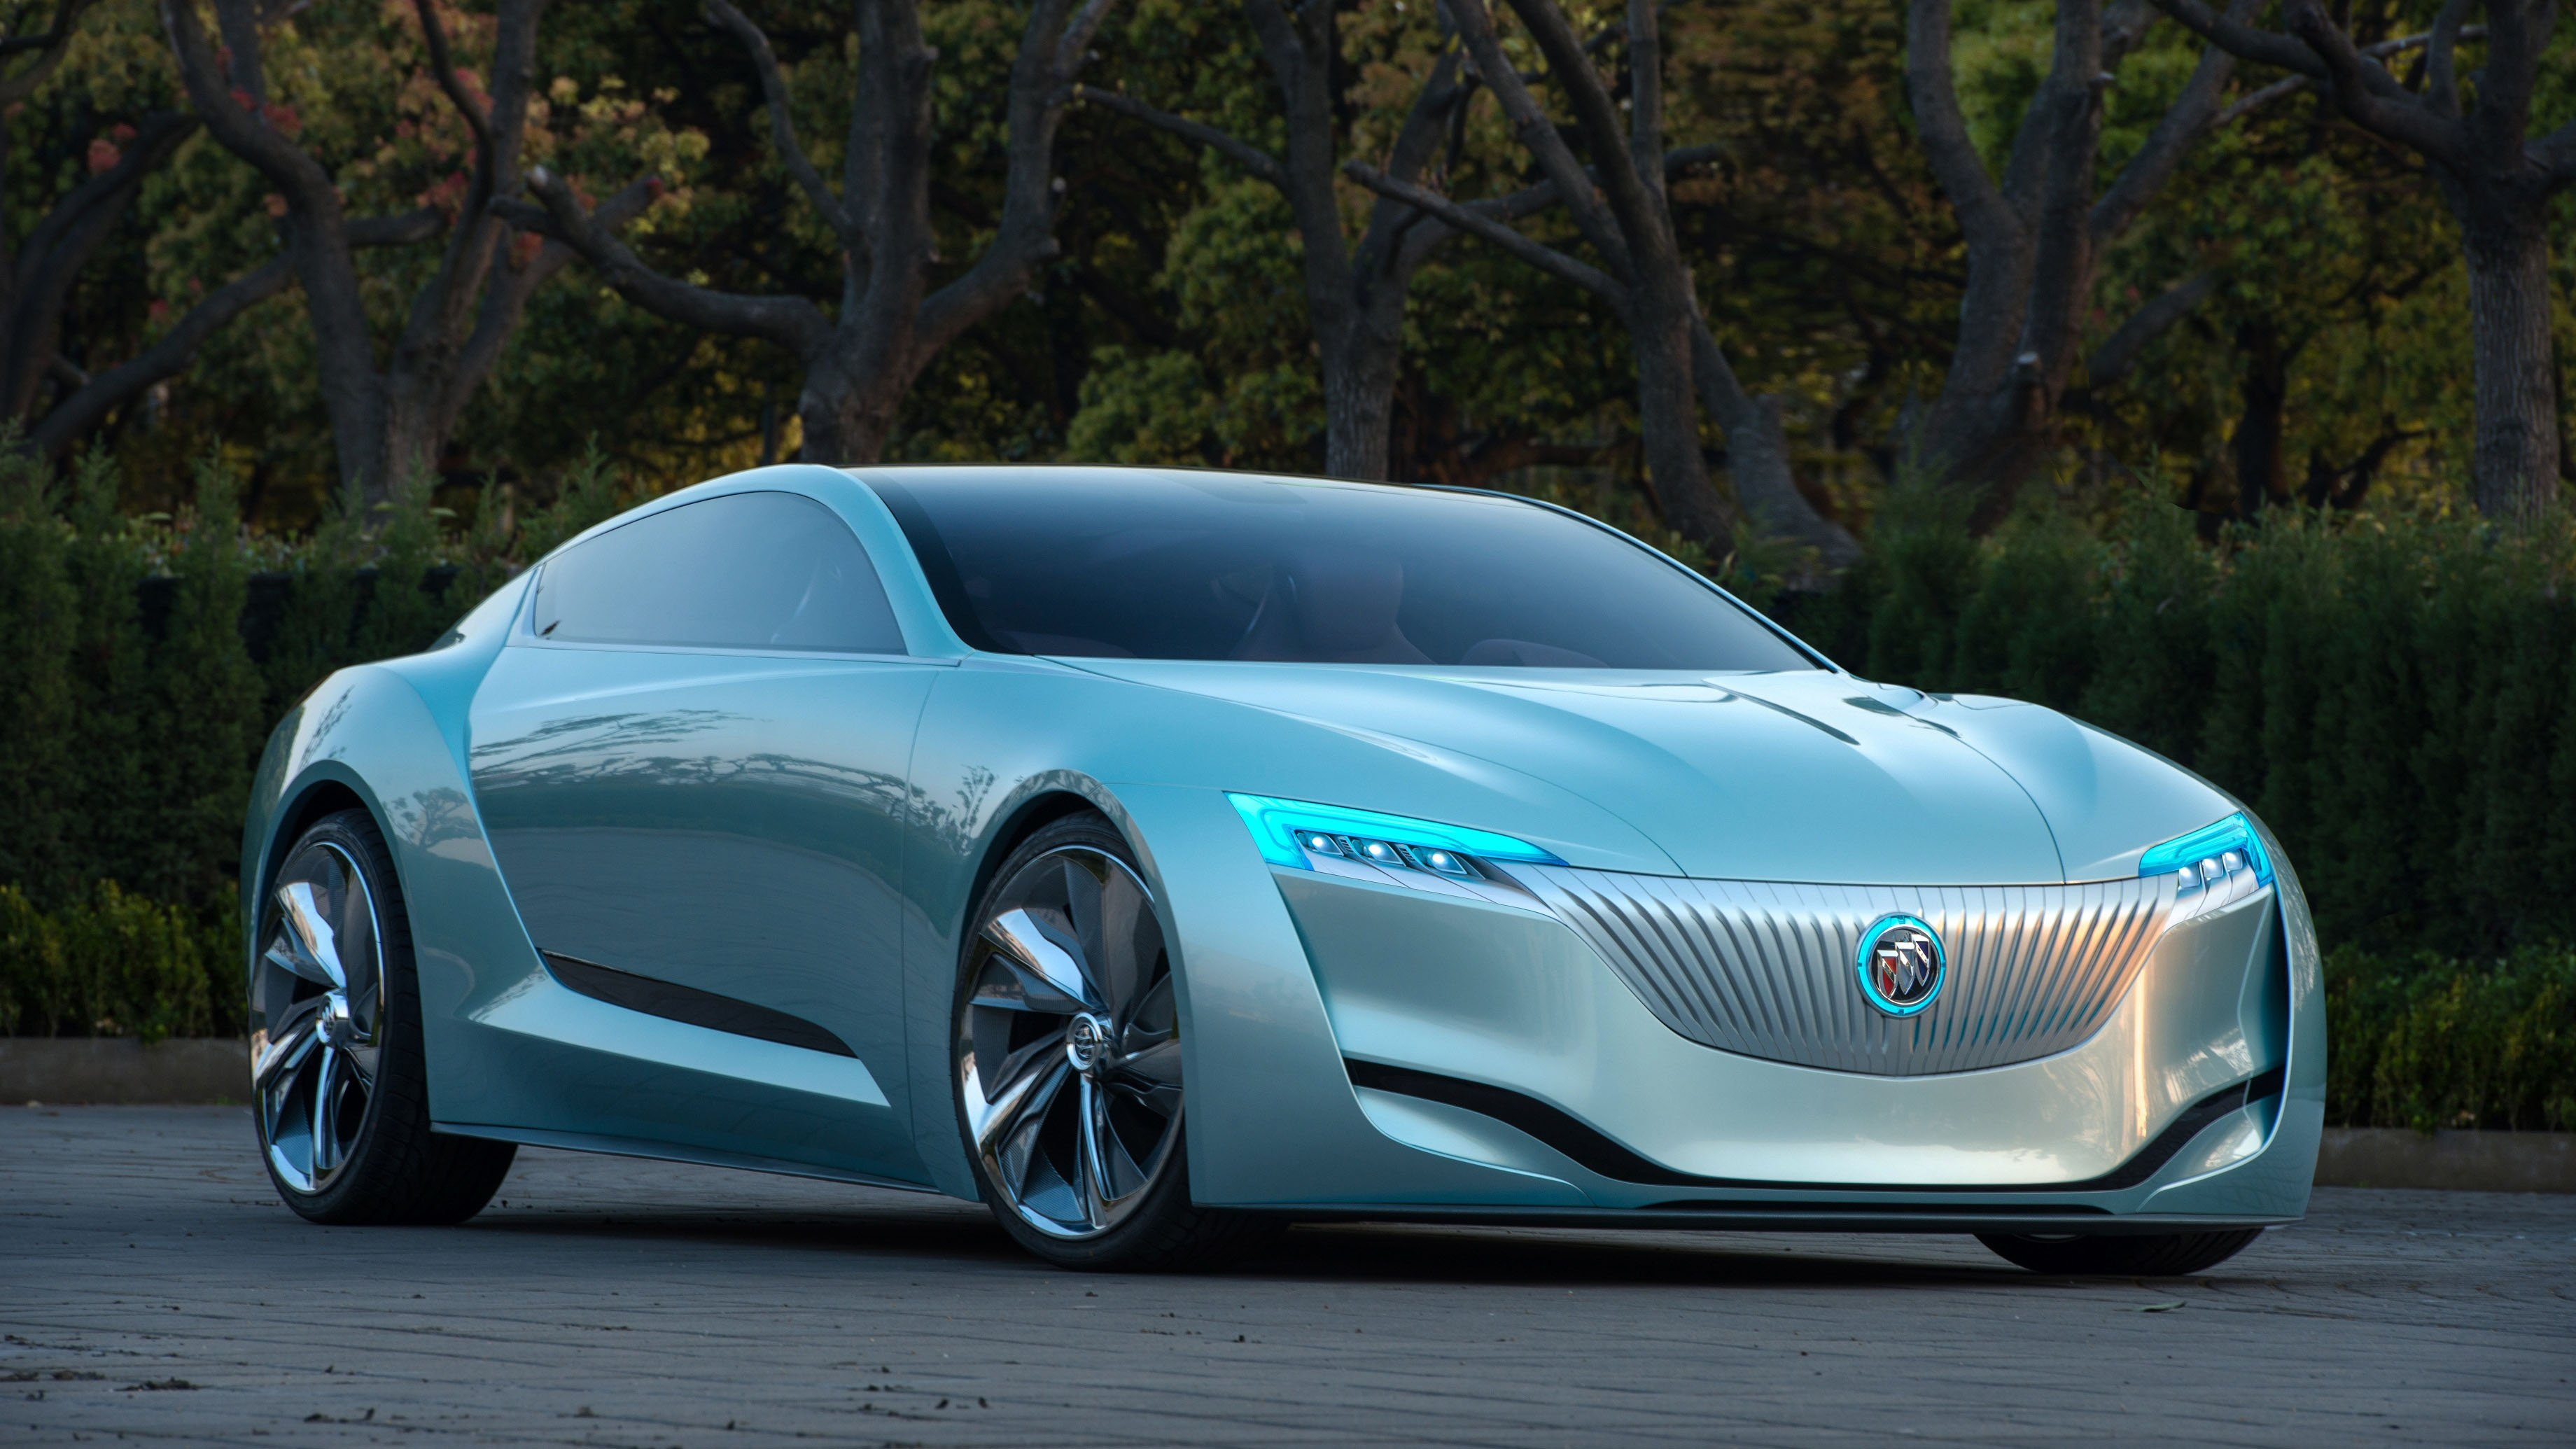 2018 Buick 2 2 Bengal Roadster Concept photo - 5